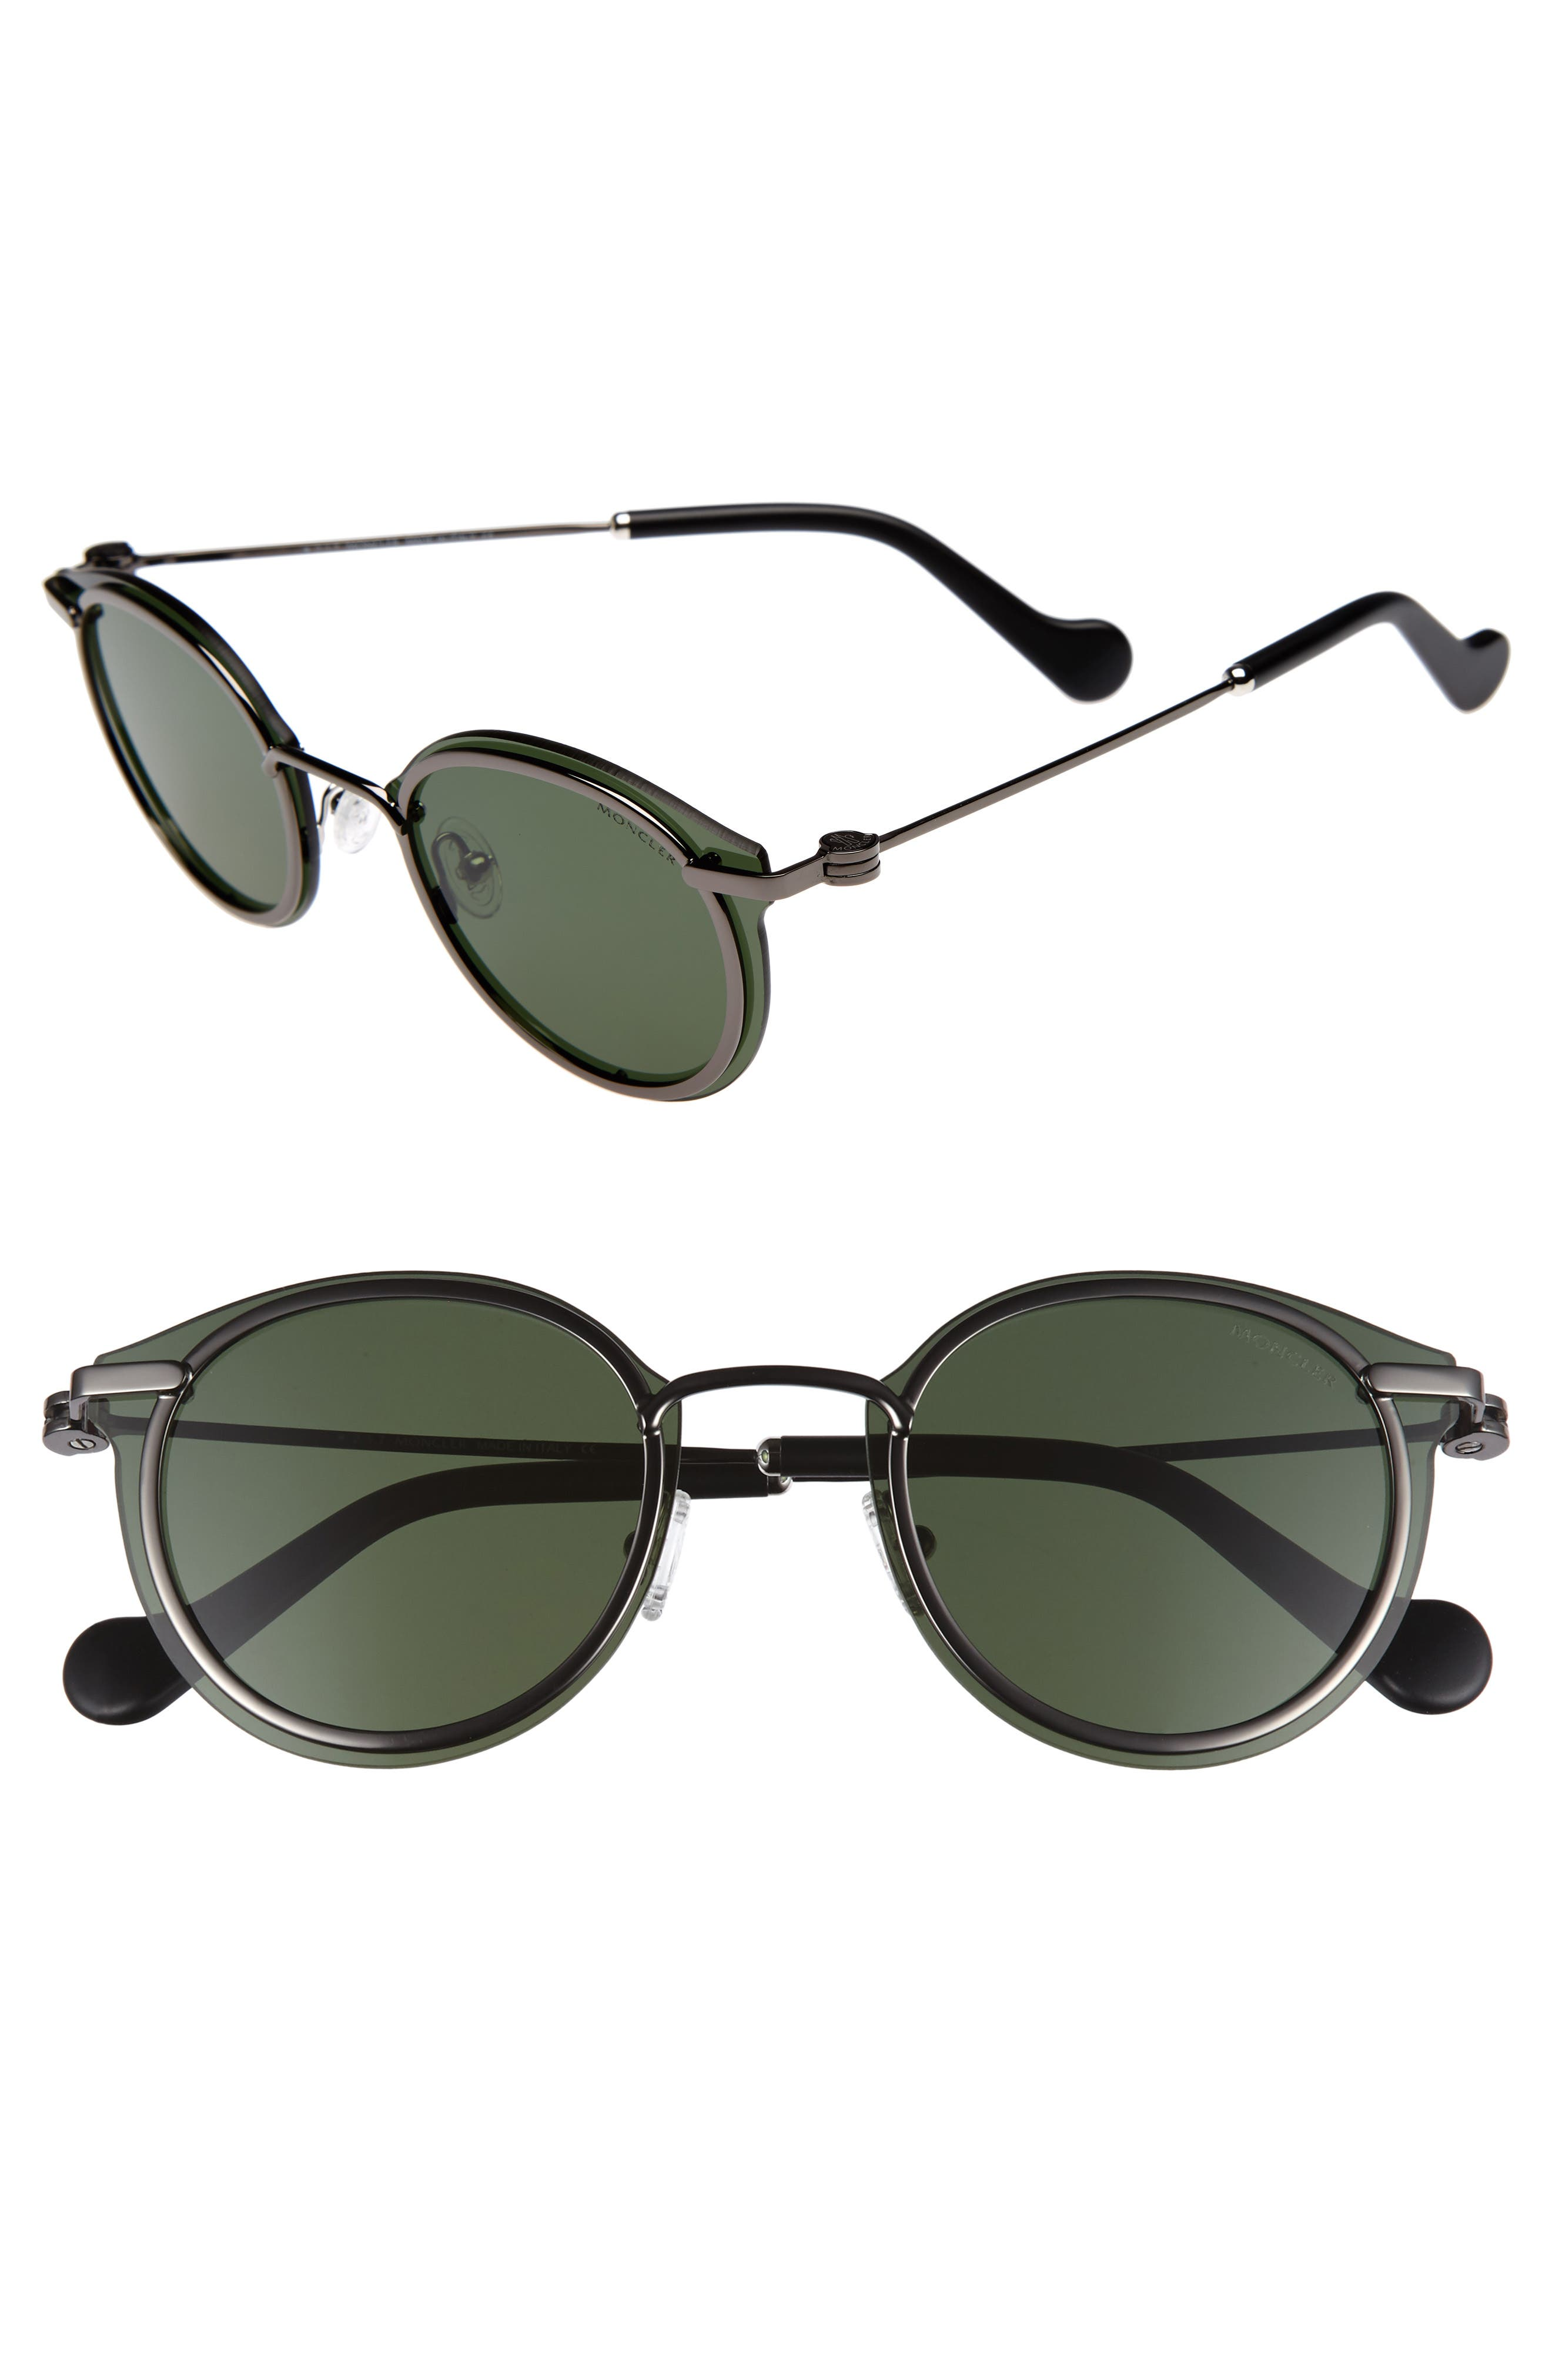 Moncler 5m Mirrored Round Sunglasses -